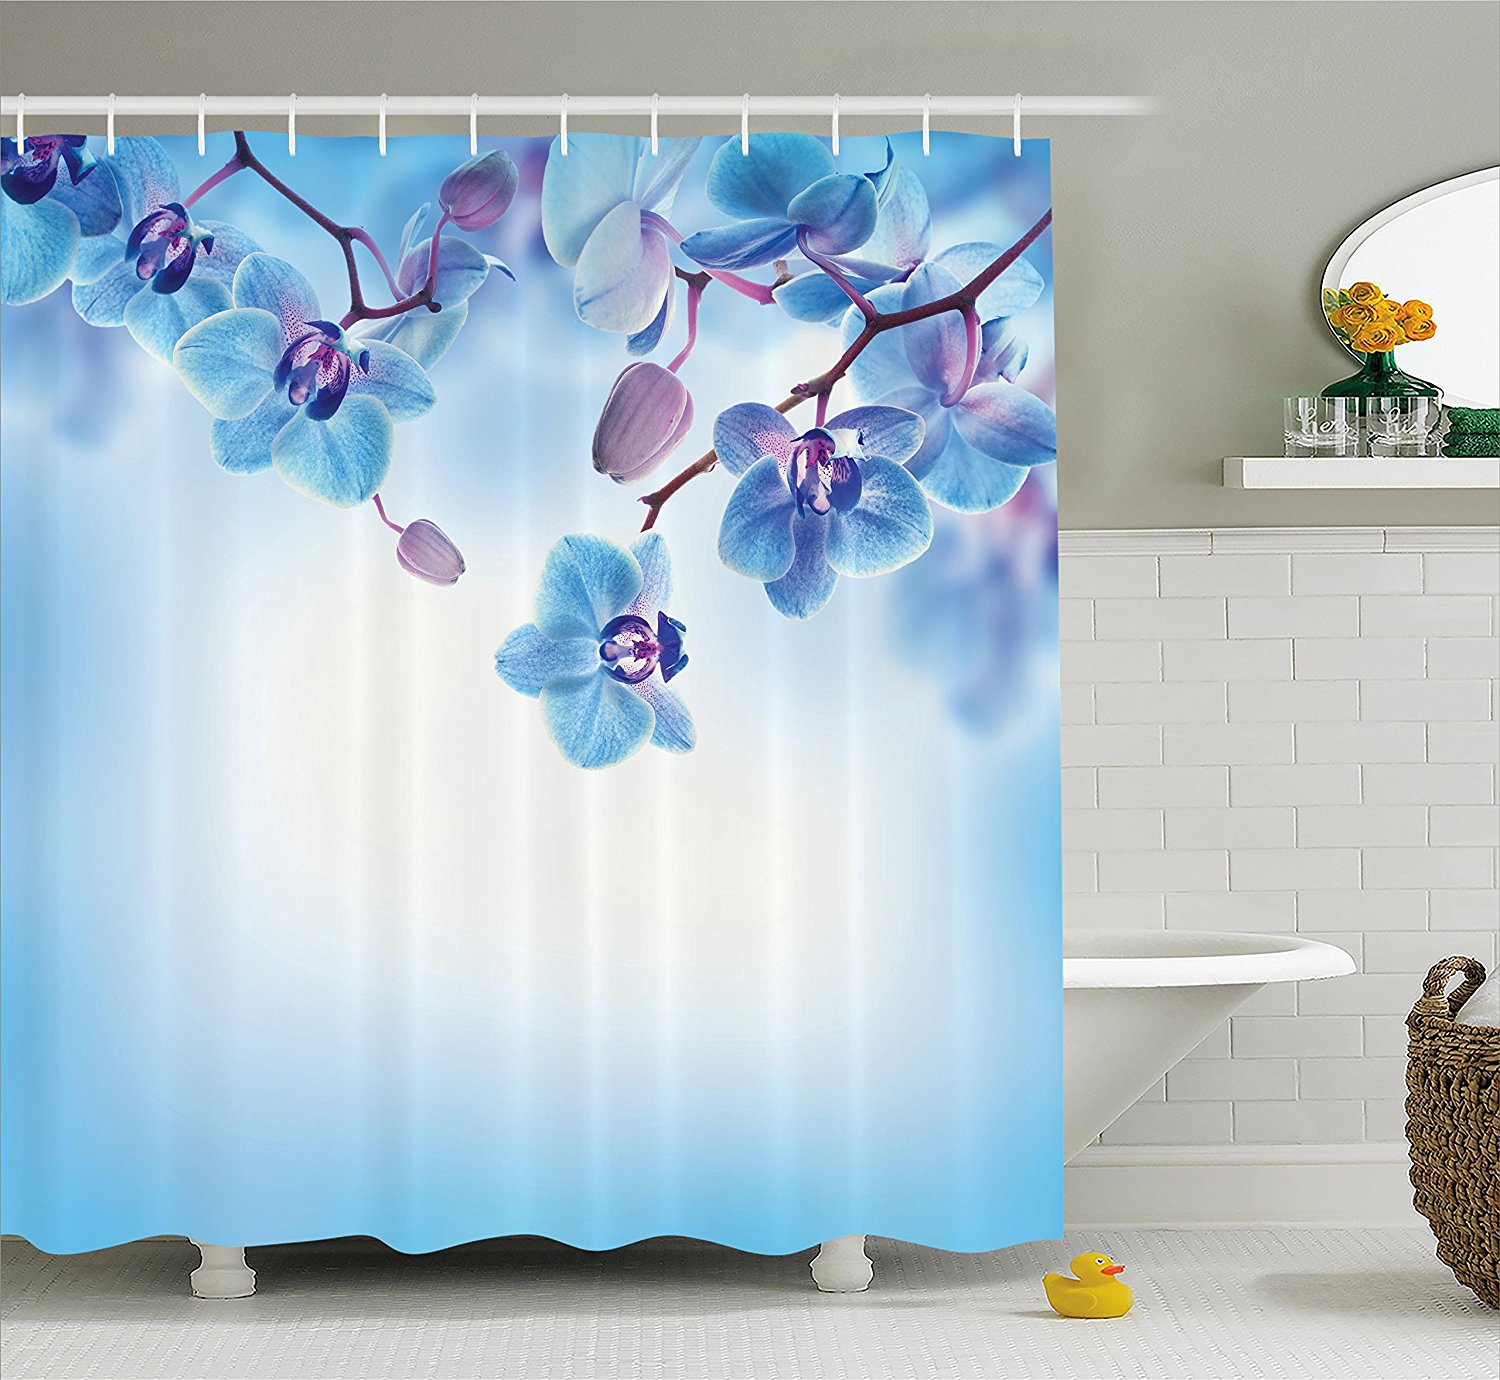 Ambesonne Flower Decor Shower Curtain, Orchids Asian Natural Flowers Reflections on Water for Spring Calming Art, Fabric Bathroom Decor Set with Hooks, 84 Inches Extra Long, Blue and Purple